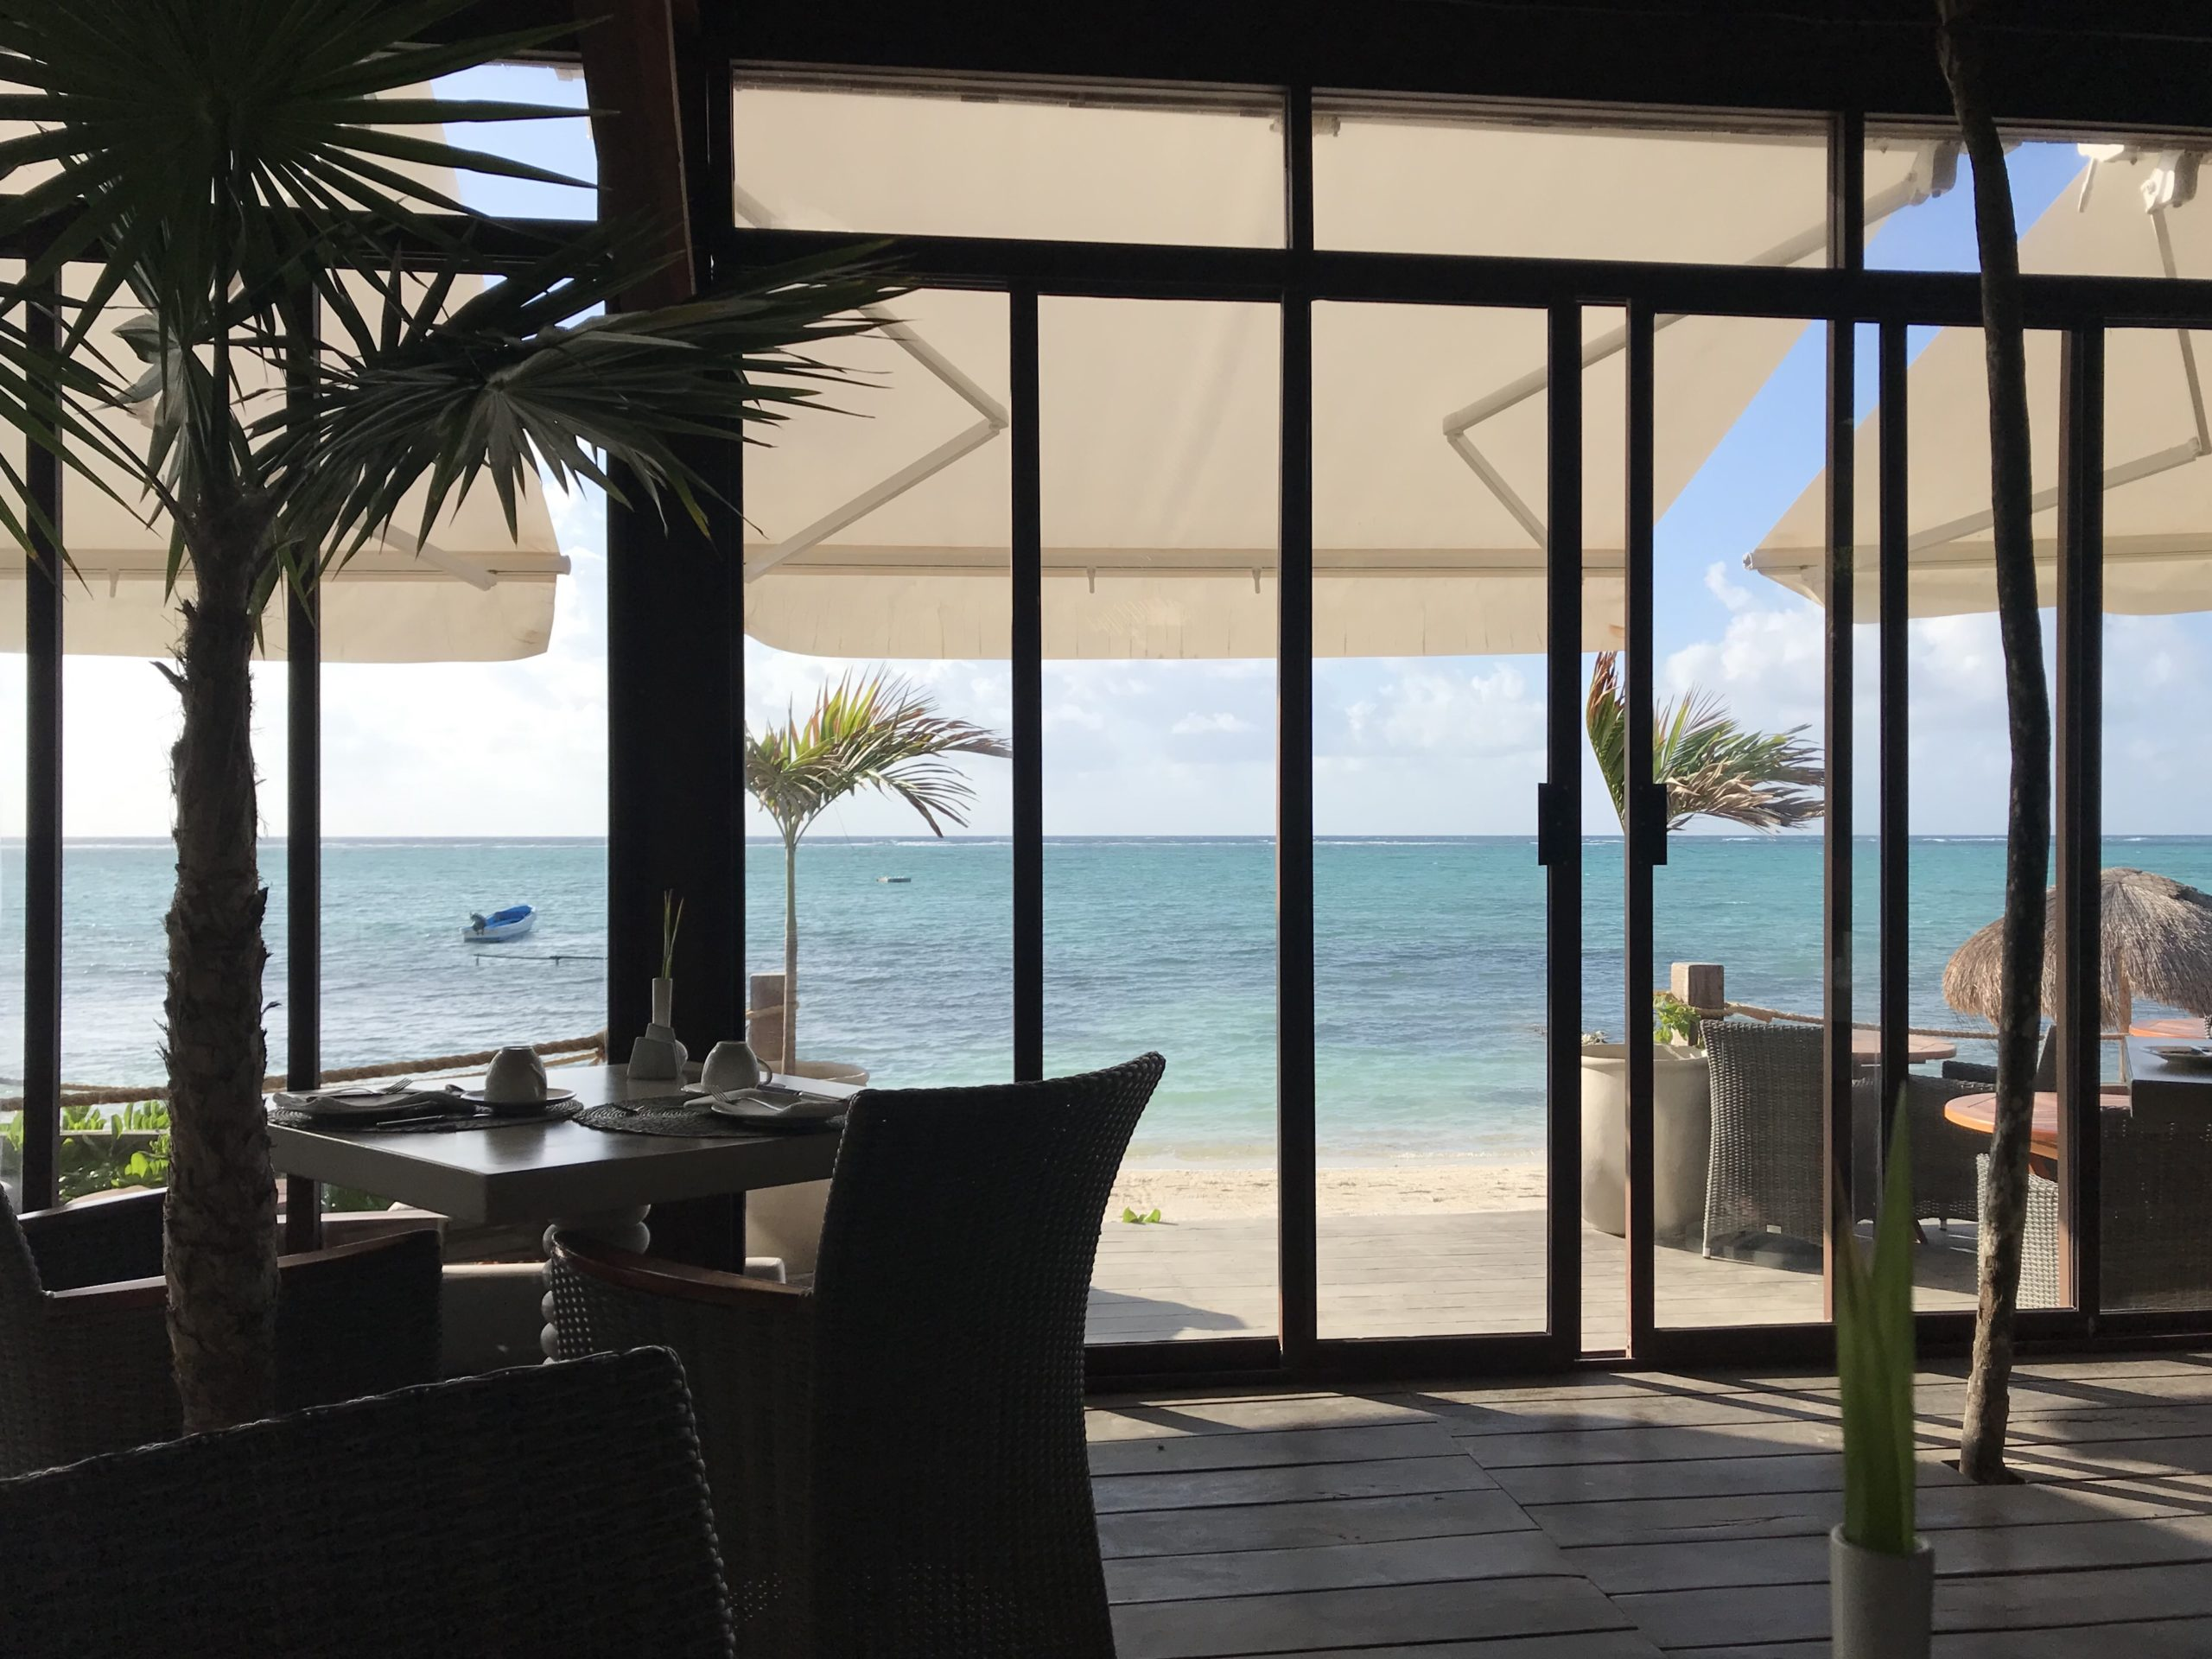 Where to eat in Tulum – Pasta night at Pandano Restaurant